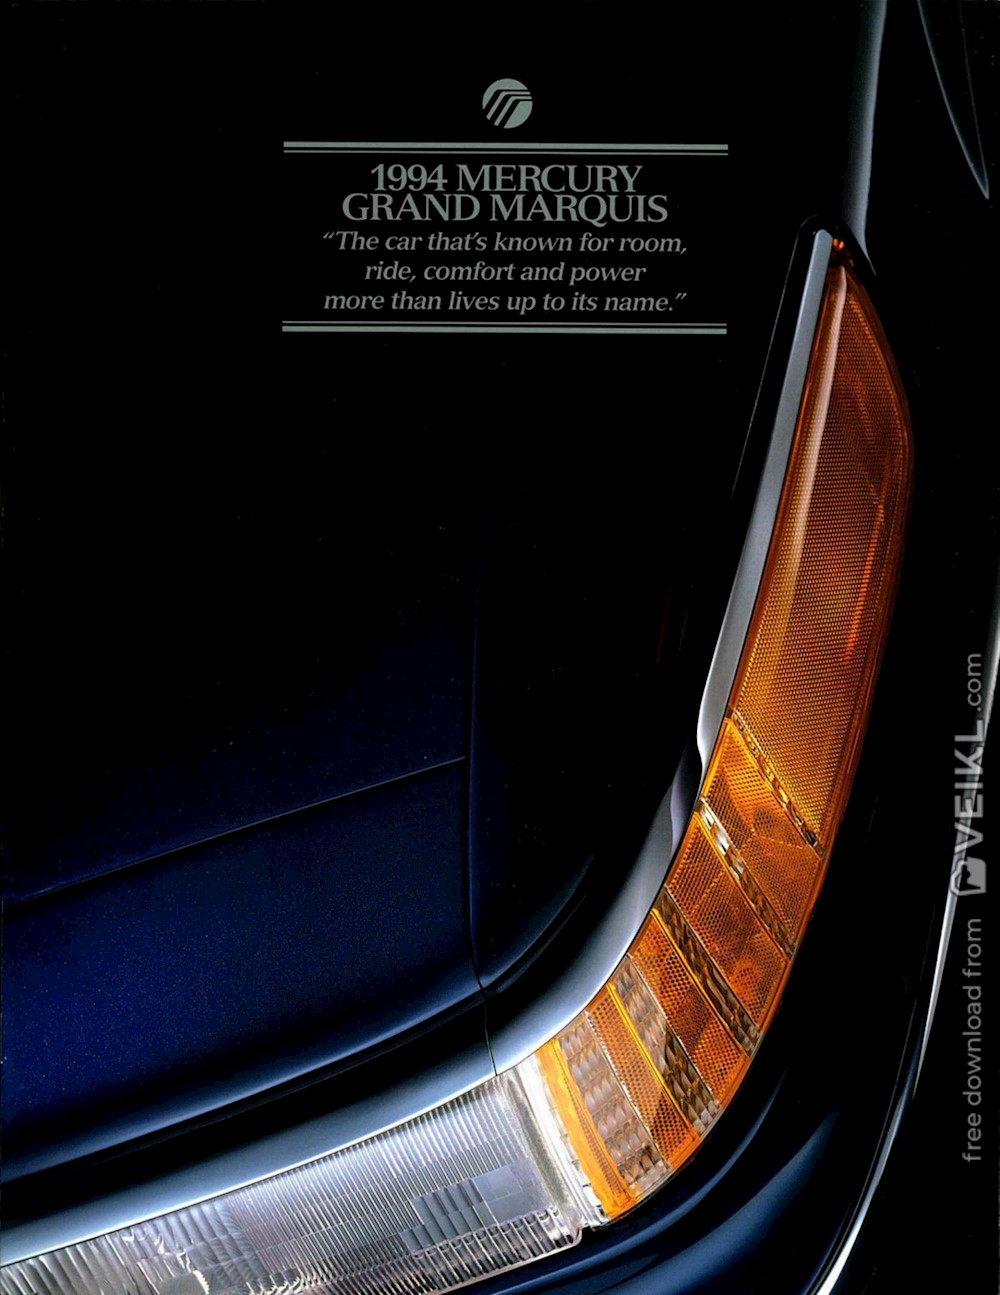 Mercury Grand Marquis Brochure 1994 EN